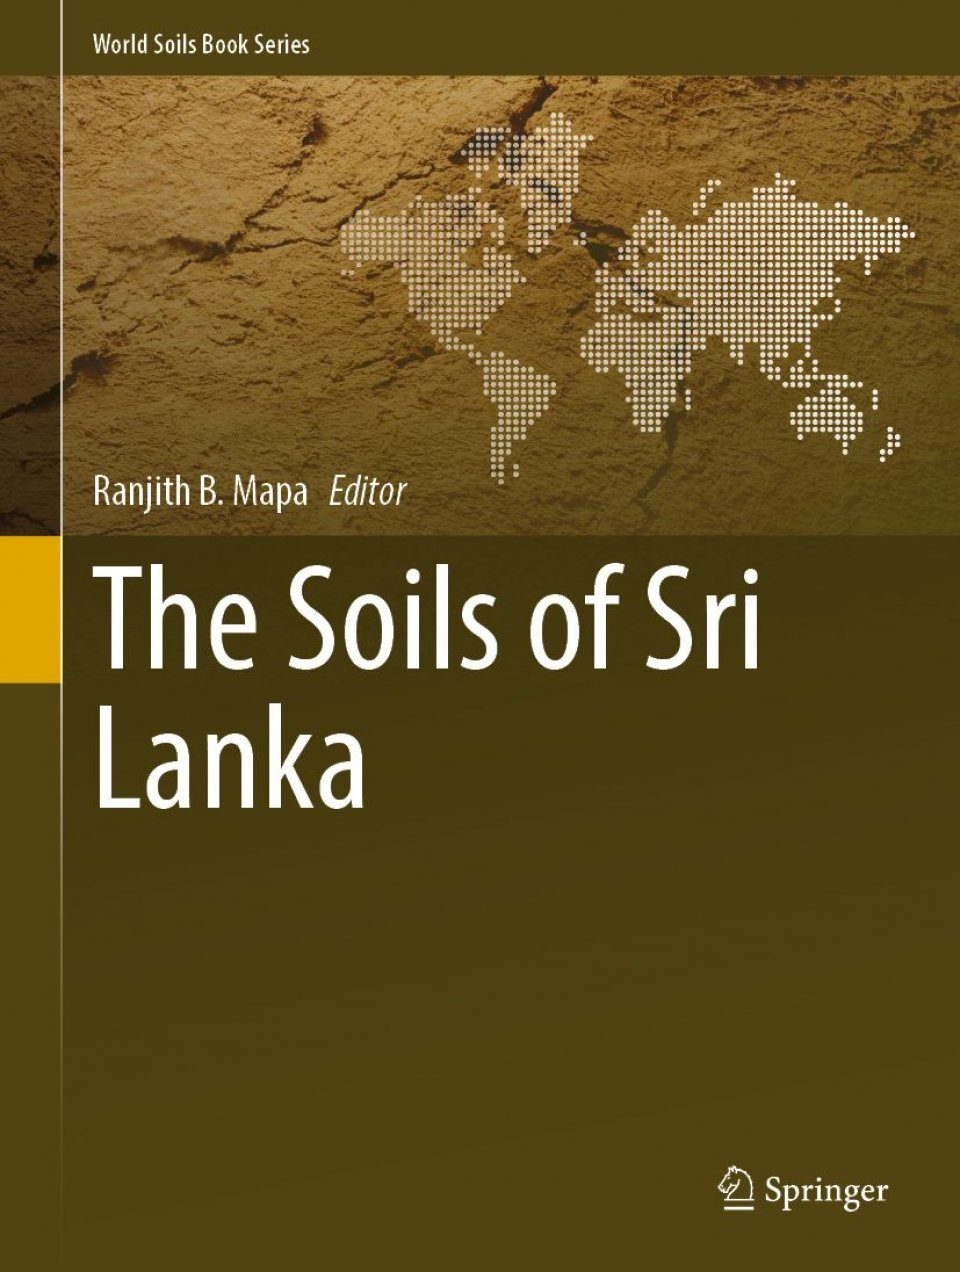 The Soils of Sri Lanka